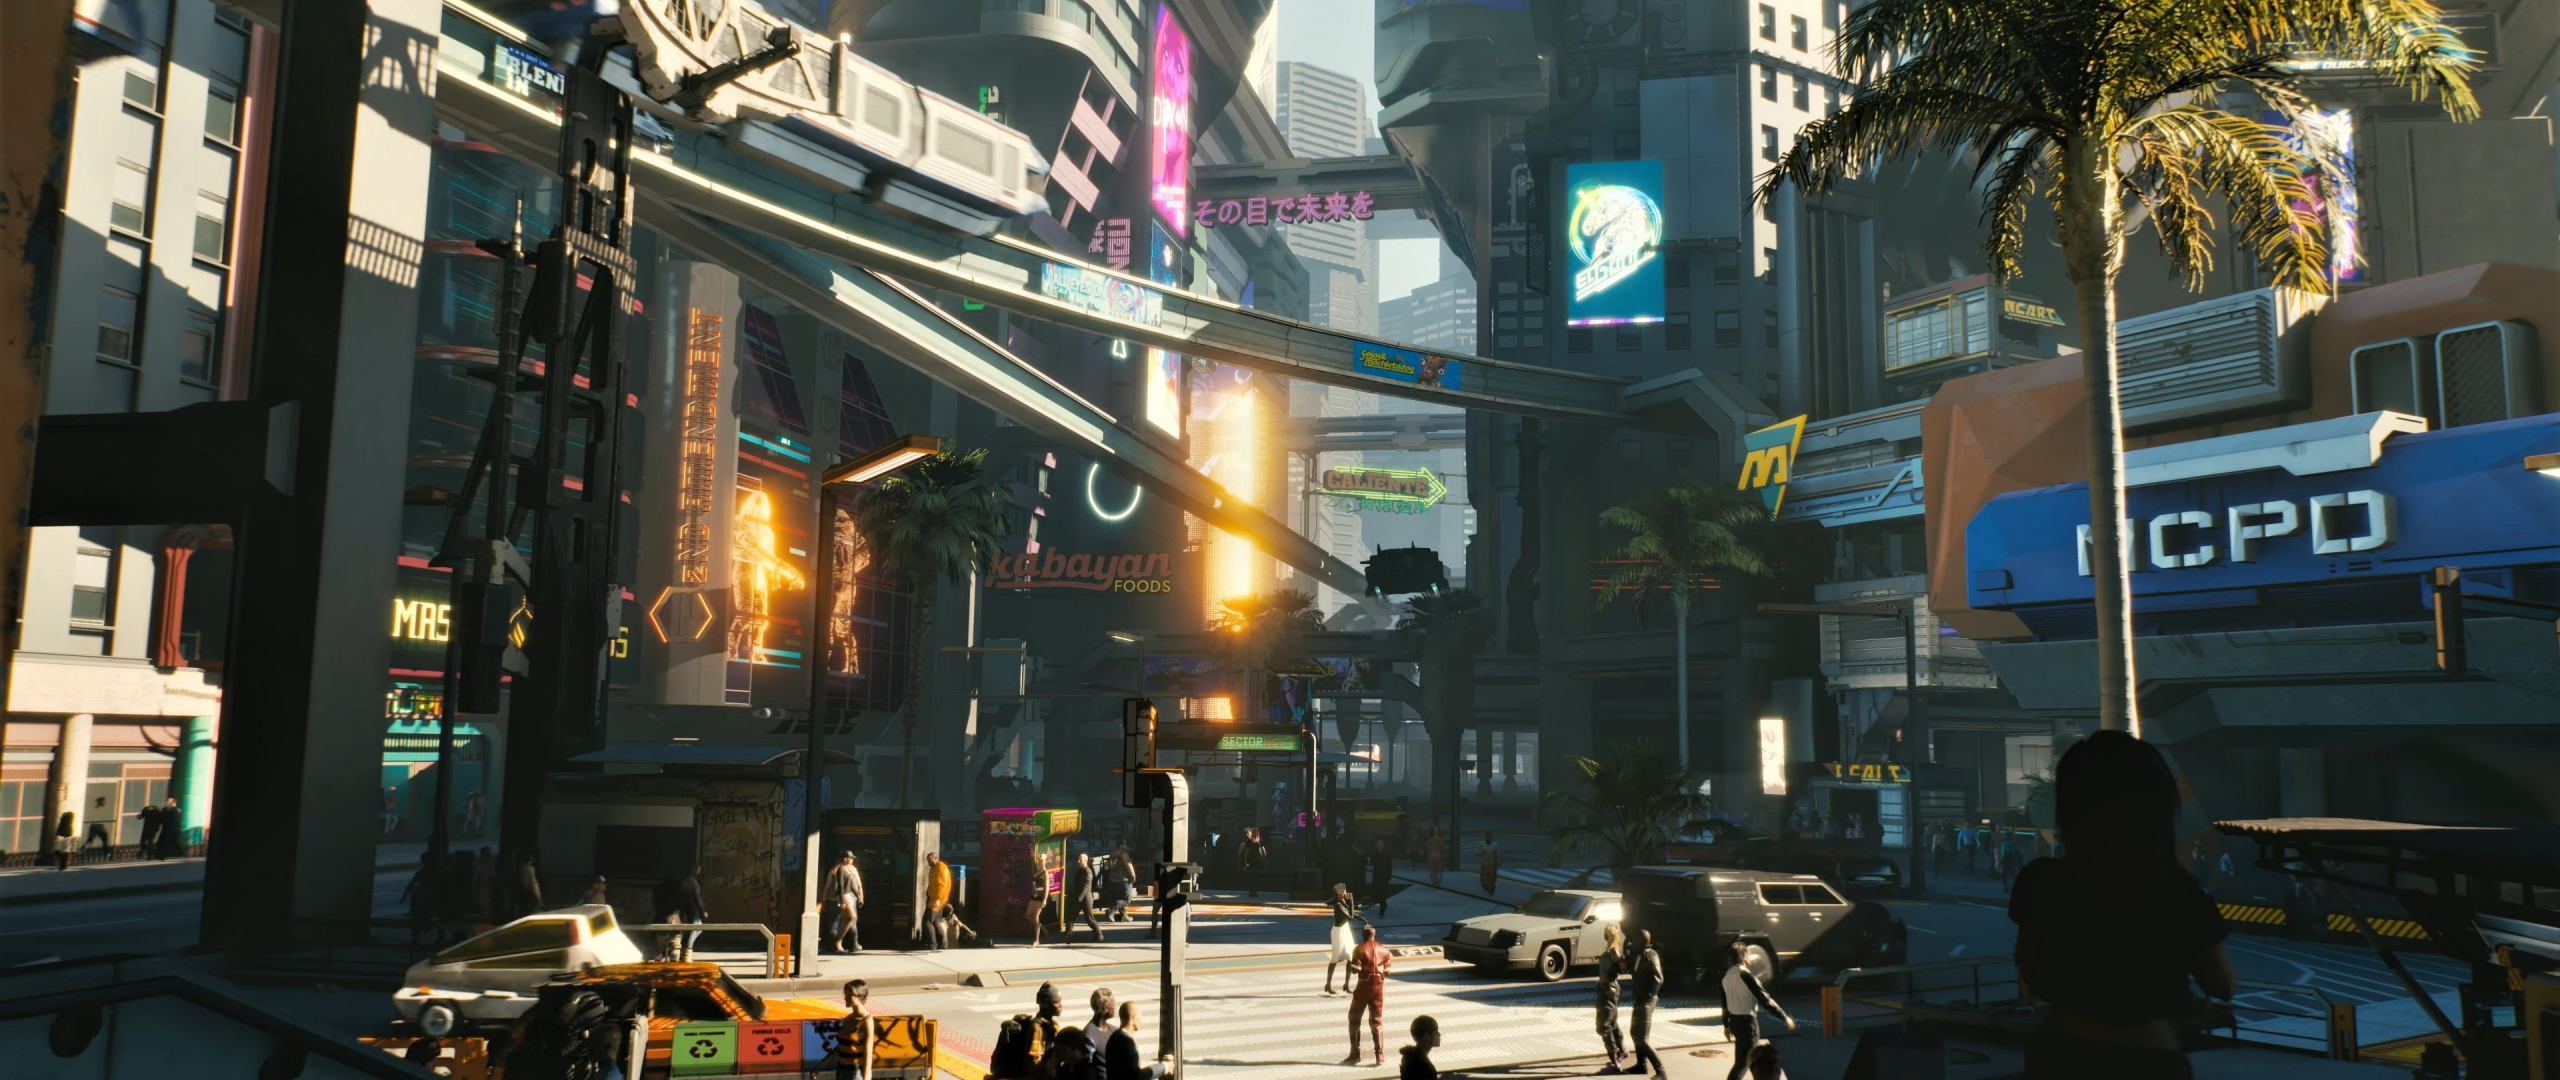 Download 2560x1080 Wallpaper Modern City Cyberpunk 2077